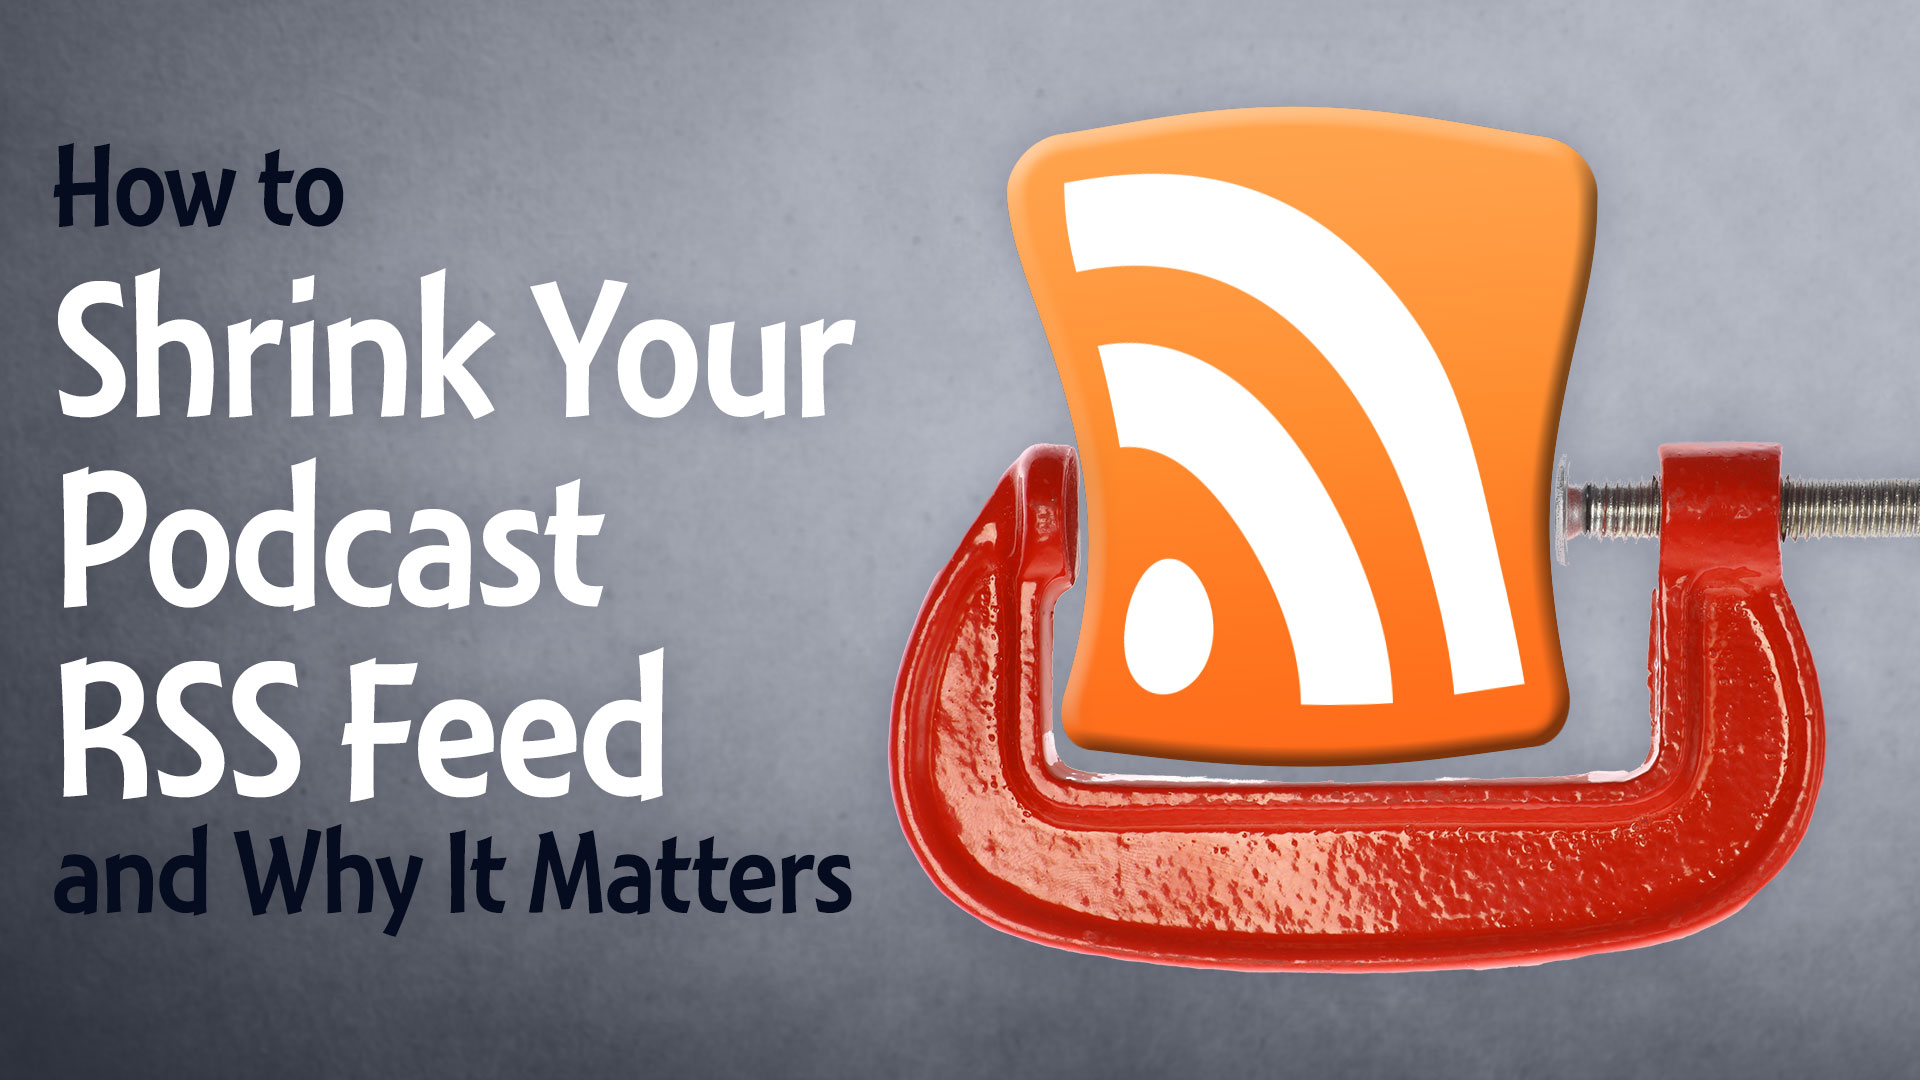 How to Shrink Your Podcast RSS Feed and Why It Matters